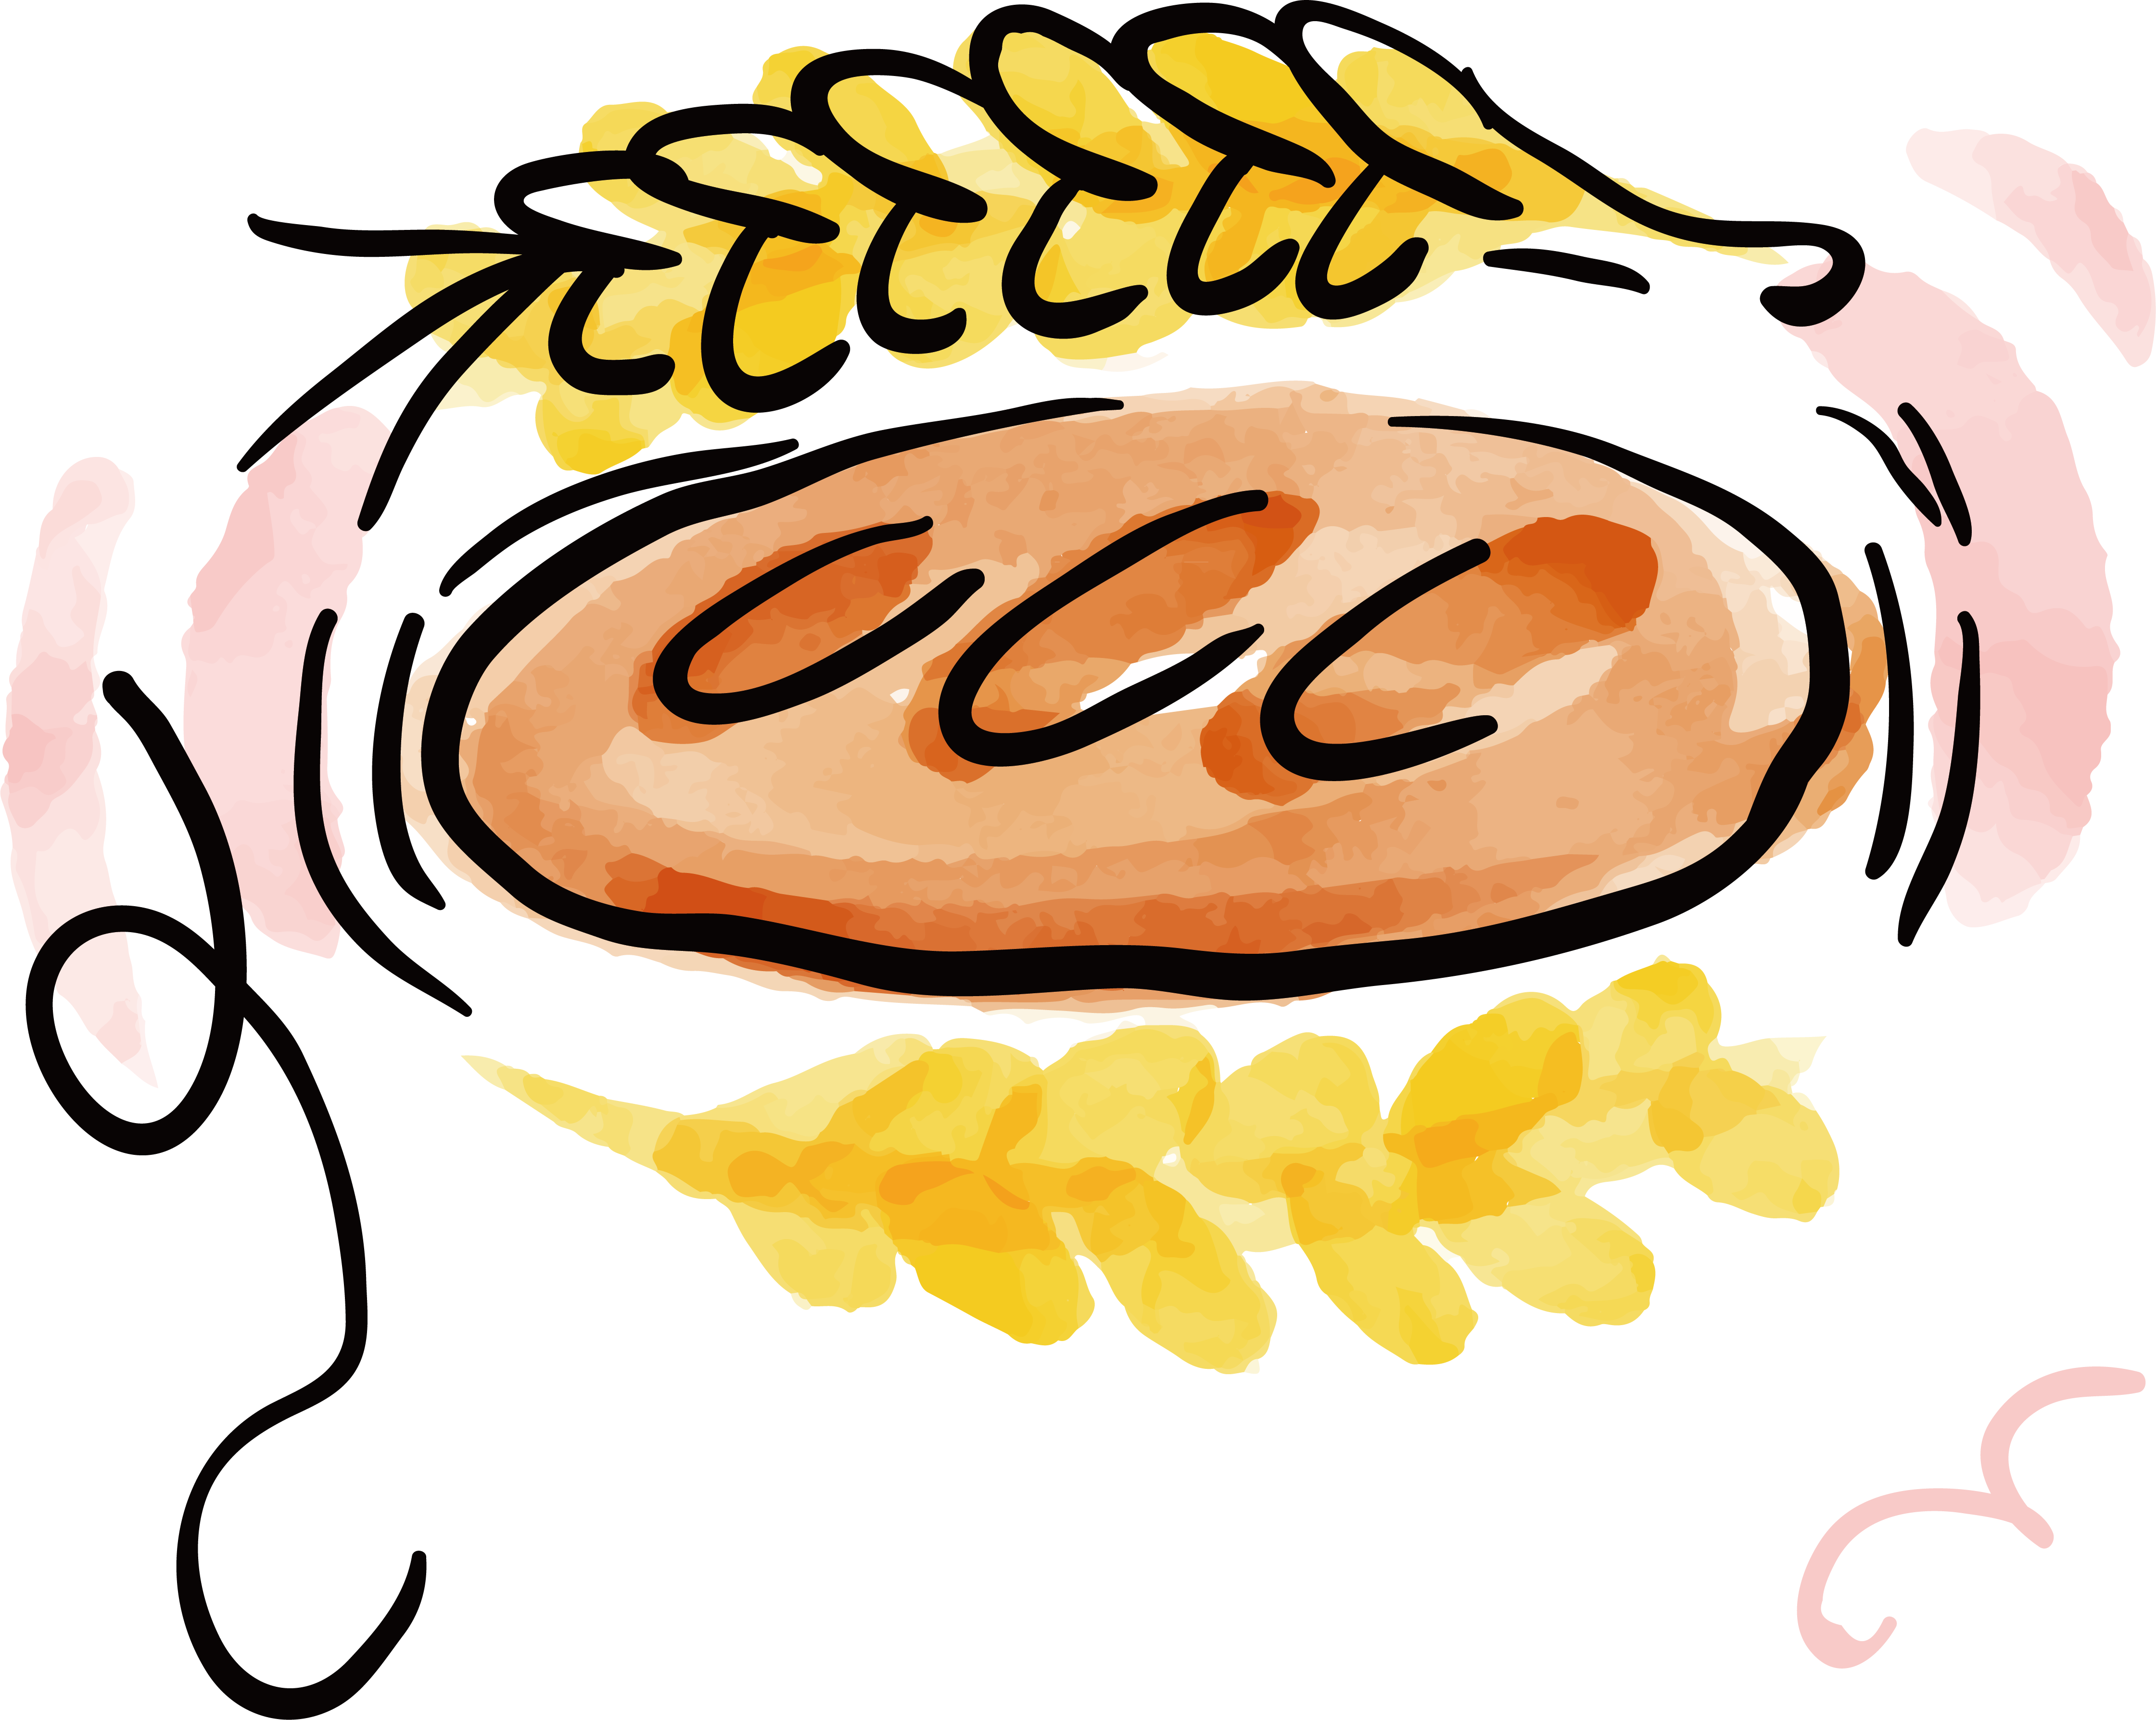 Wheat clipart watercolor. Croissant bread painting baking